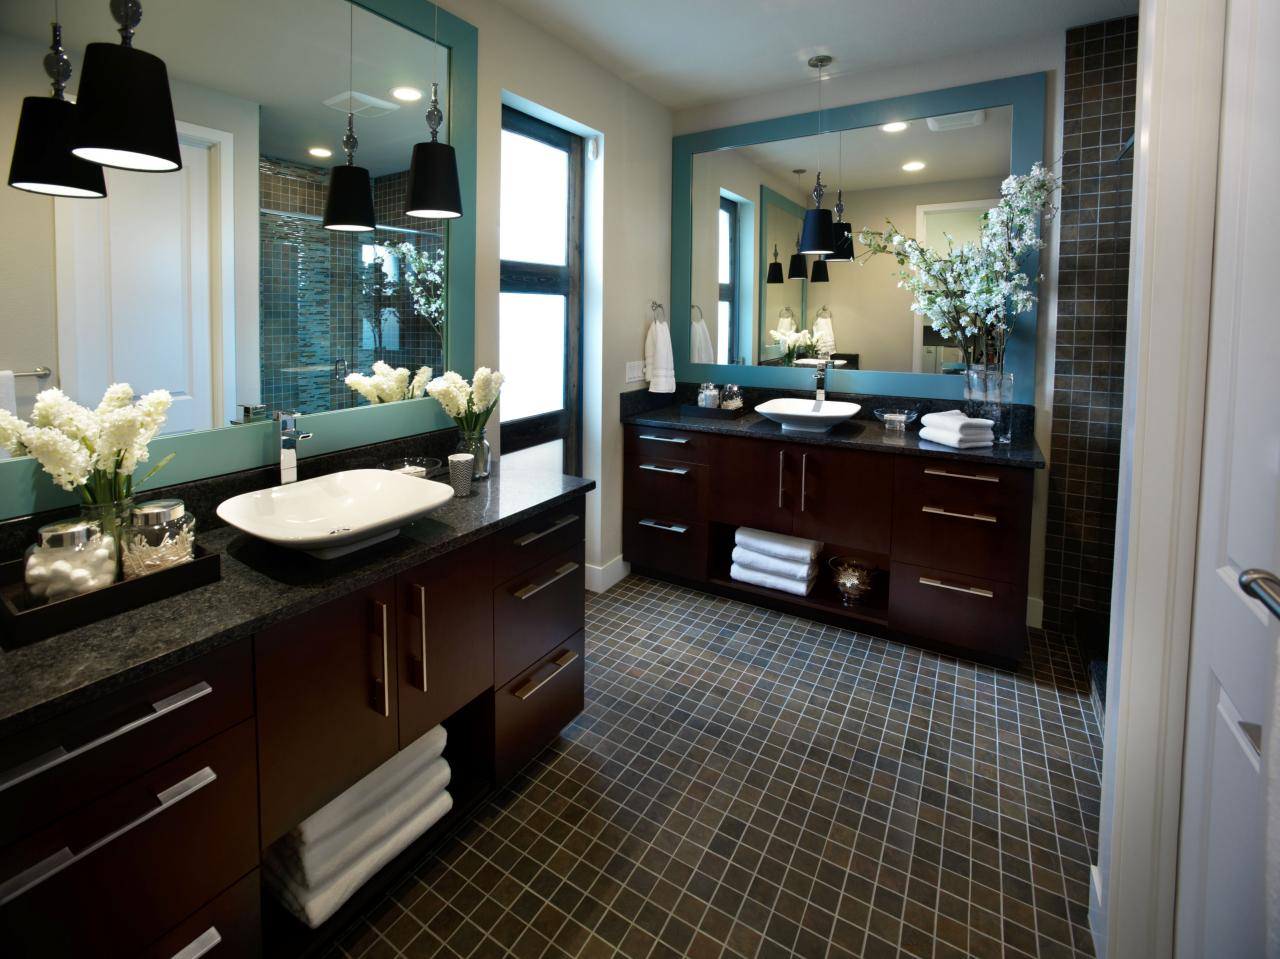 Modern Bathroom Design Ideas: Pictures & Tips From HGTV